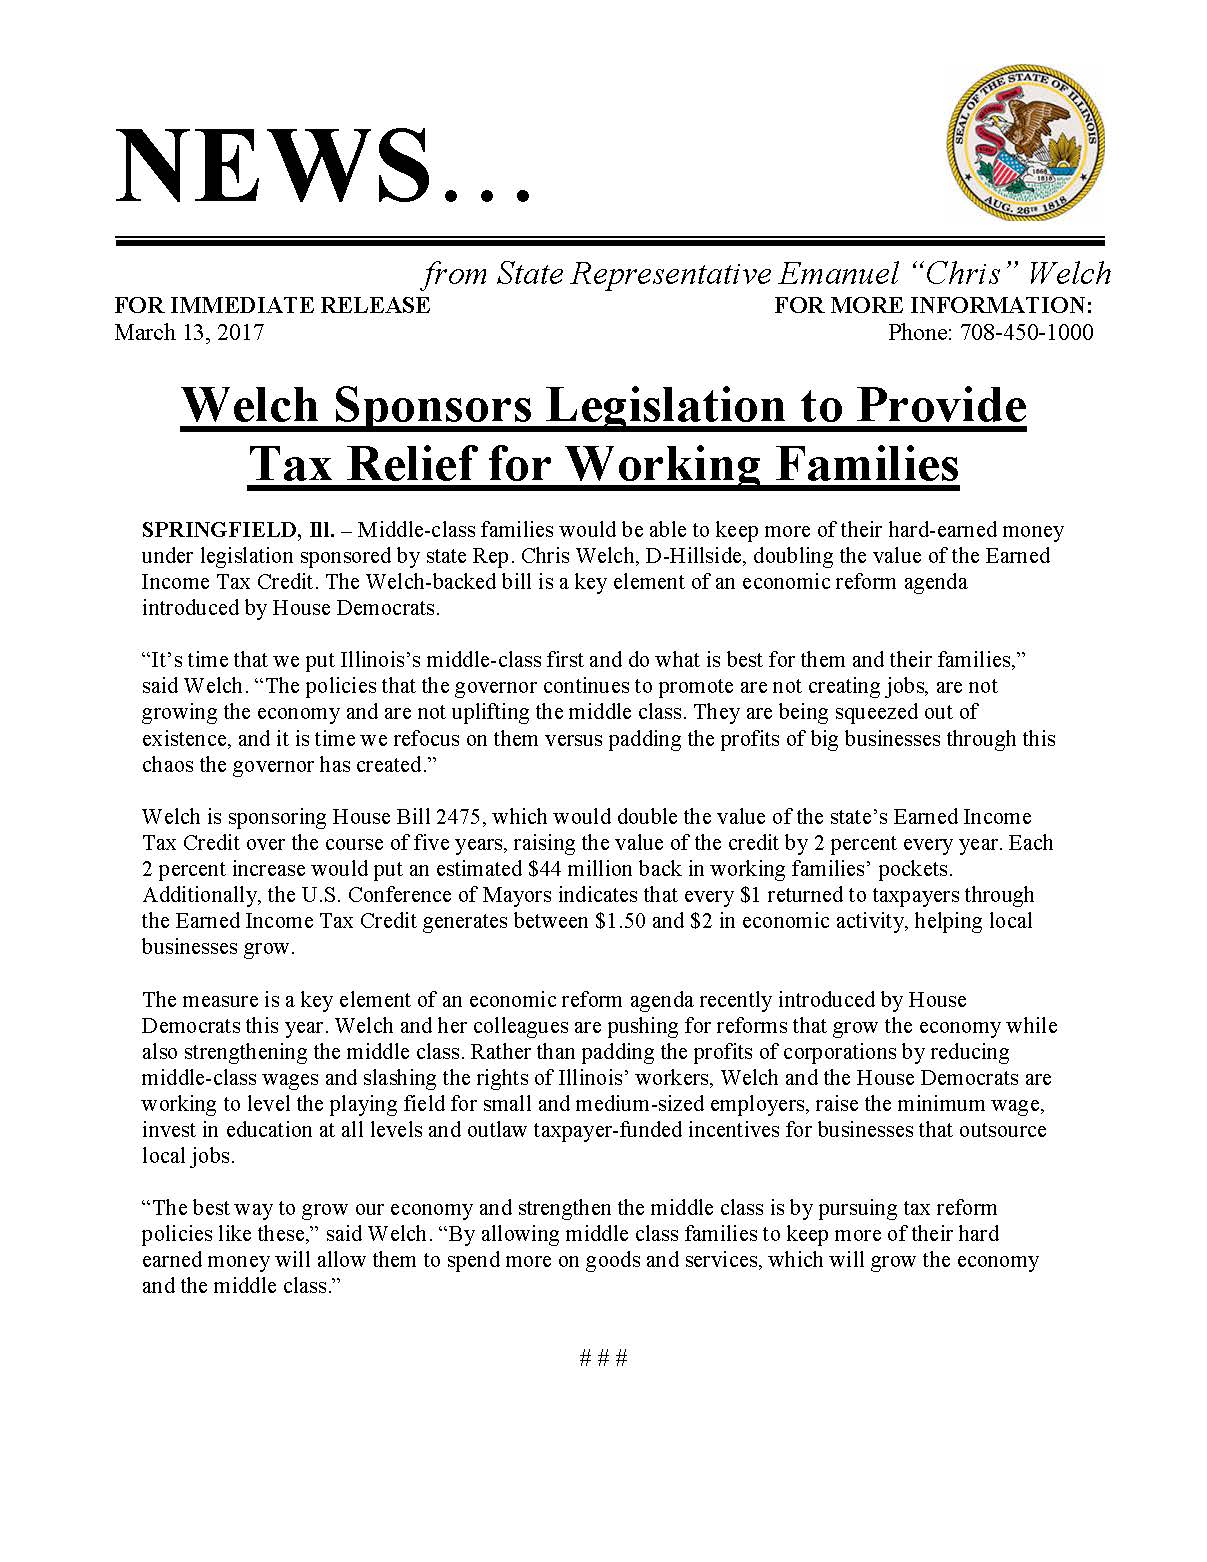 Welch Sponsors Legislation to Provide Tax Relief for Working Families  (March 13, 2017)